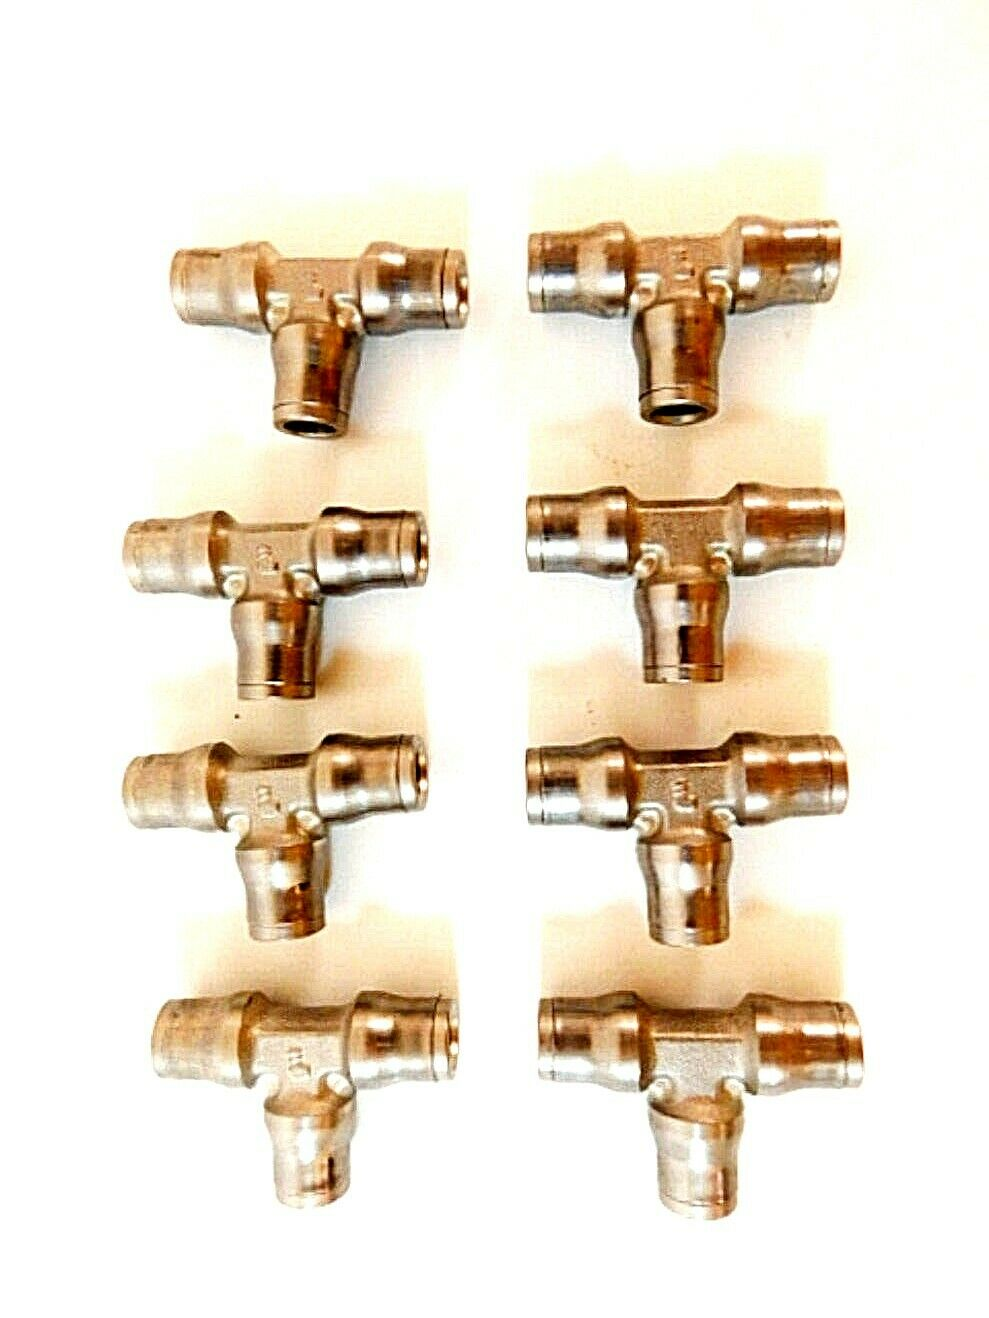 6 mm Tube OD Union Tee Legris 3604 06 00 Nickel-Plated Brass Push-to-Connect Fitting